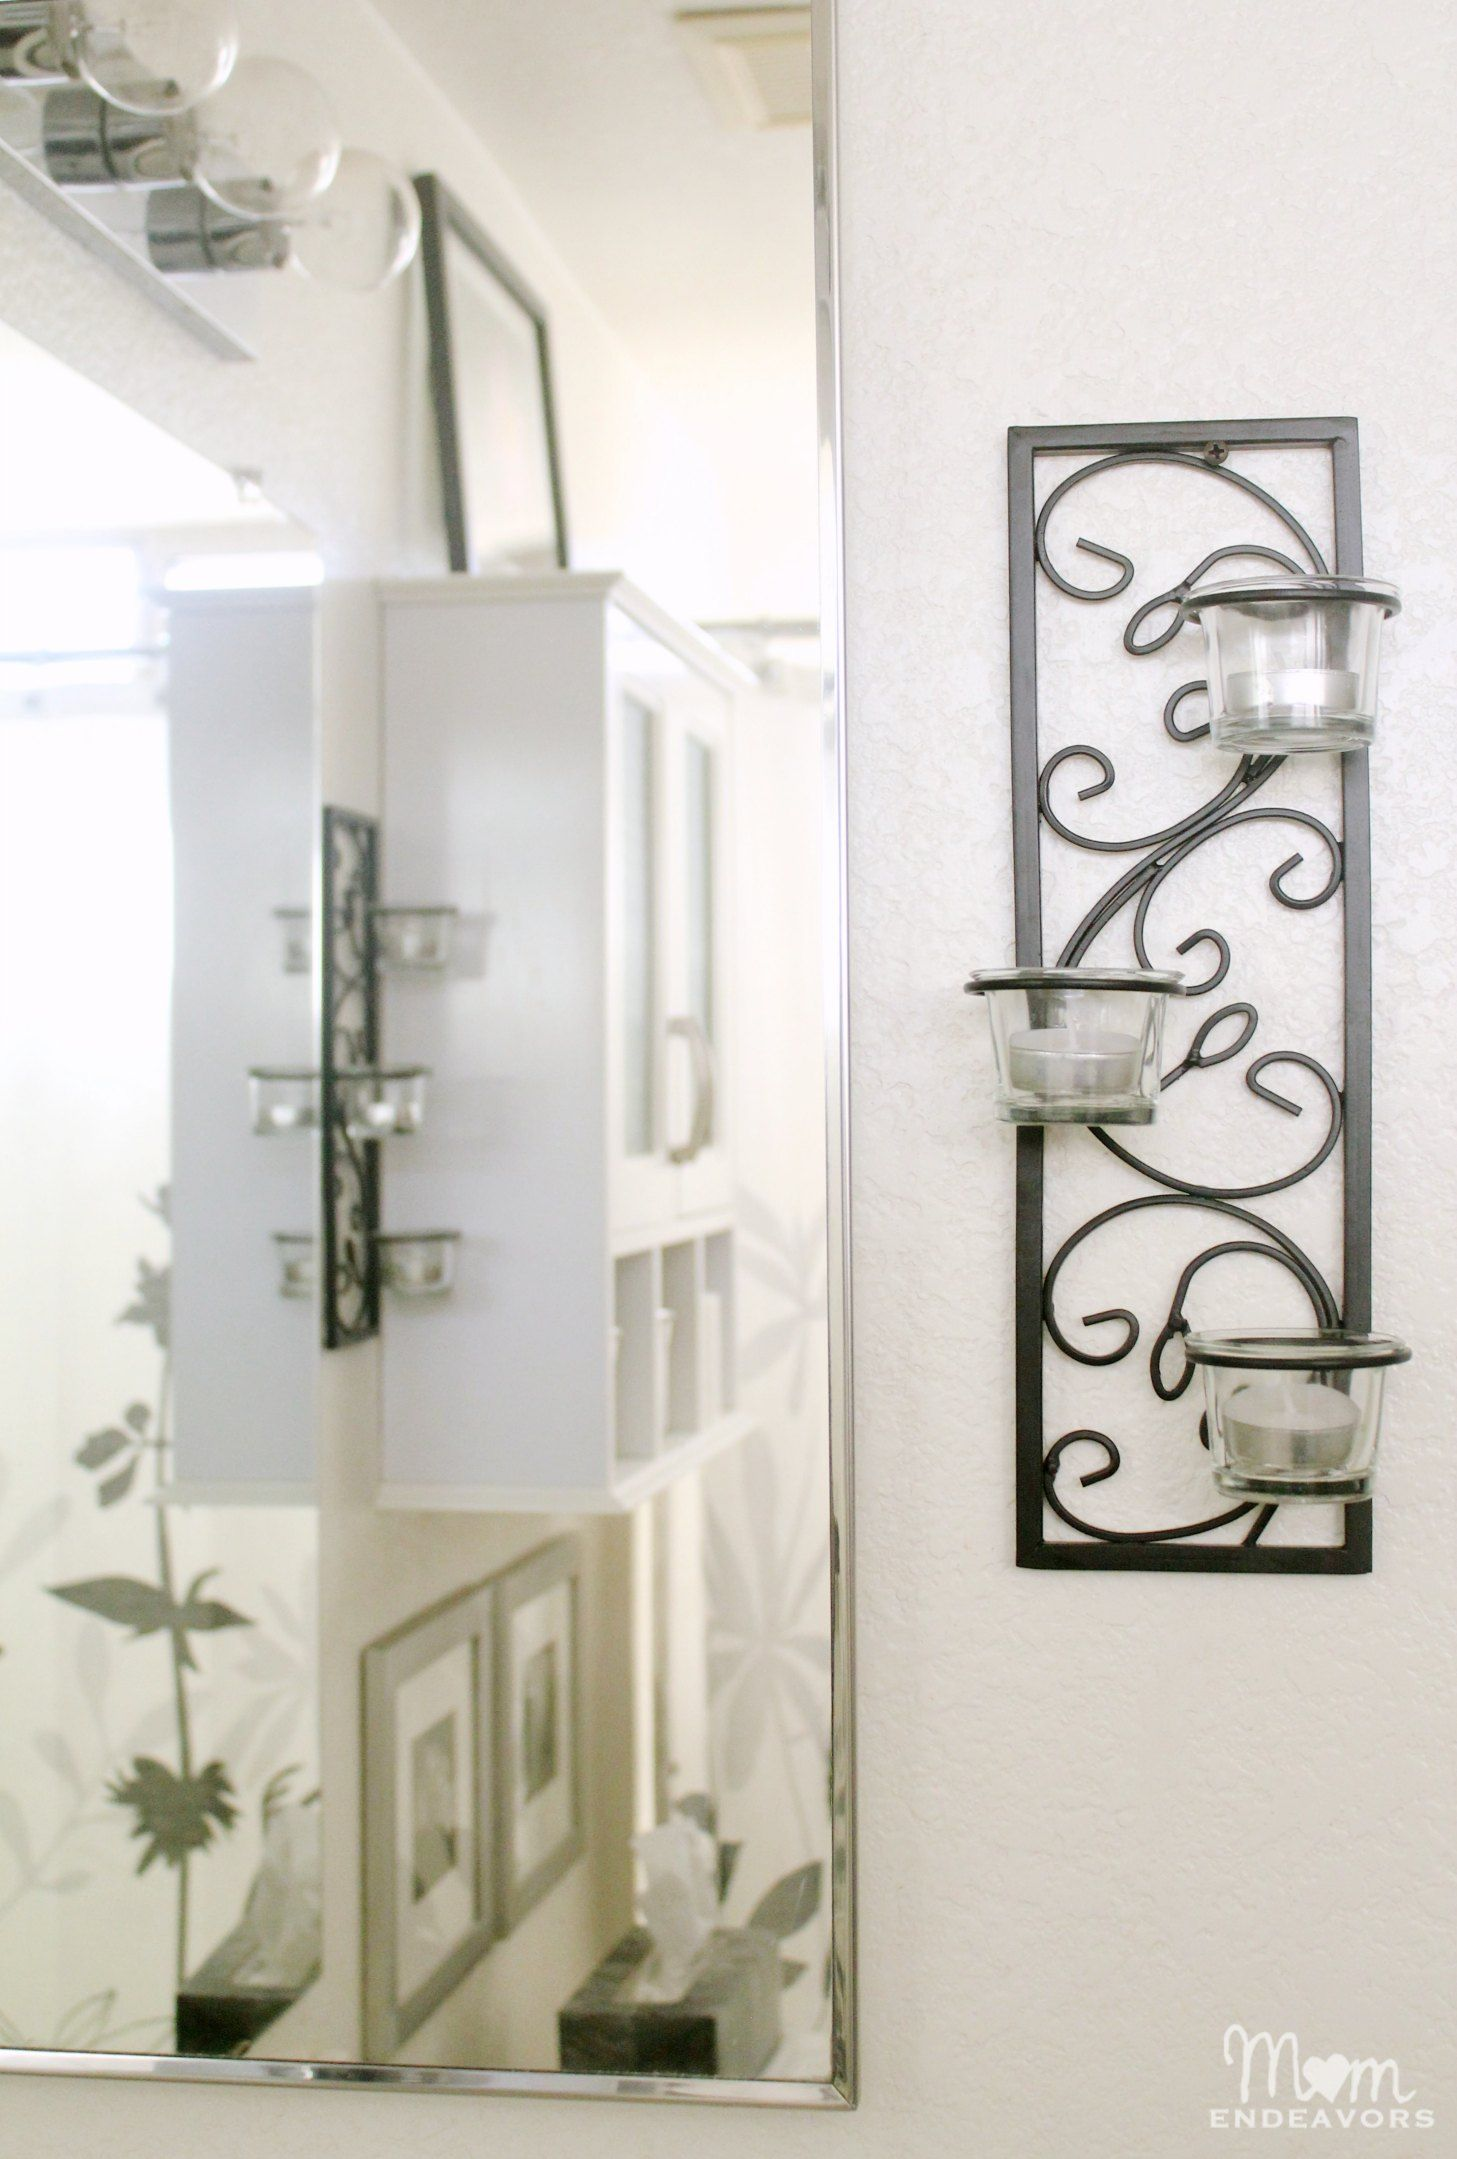 Candle Wall Sconces Can Work In The Bathroom To Add Some Wall Magnificent Candle Wall Sconces For Dining Room Design Decoration